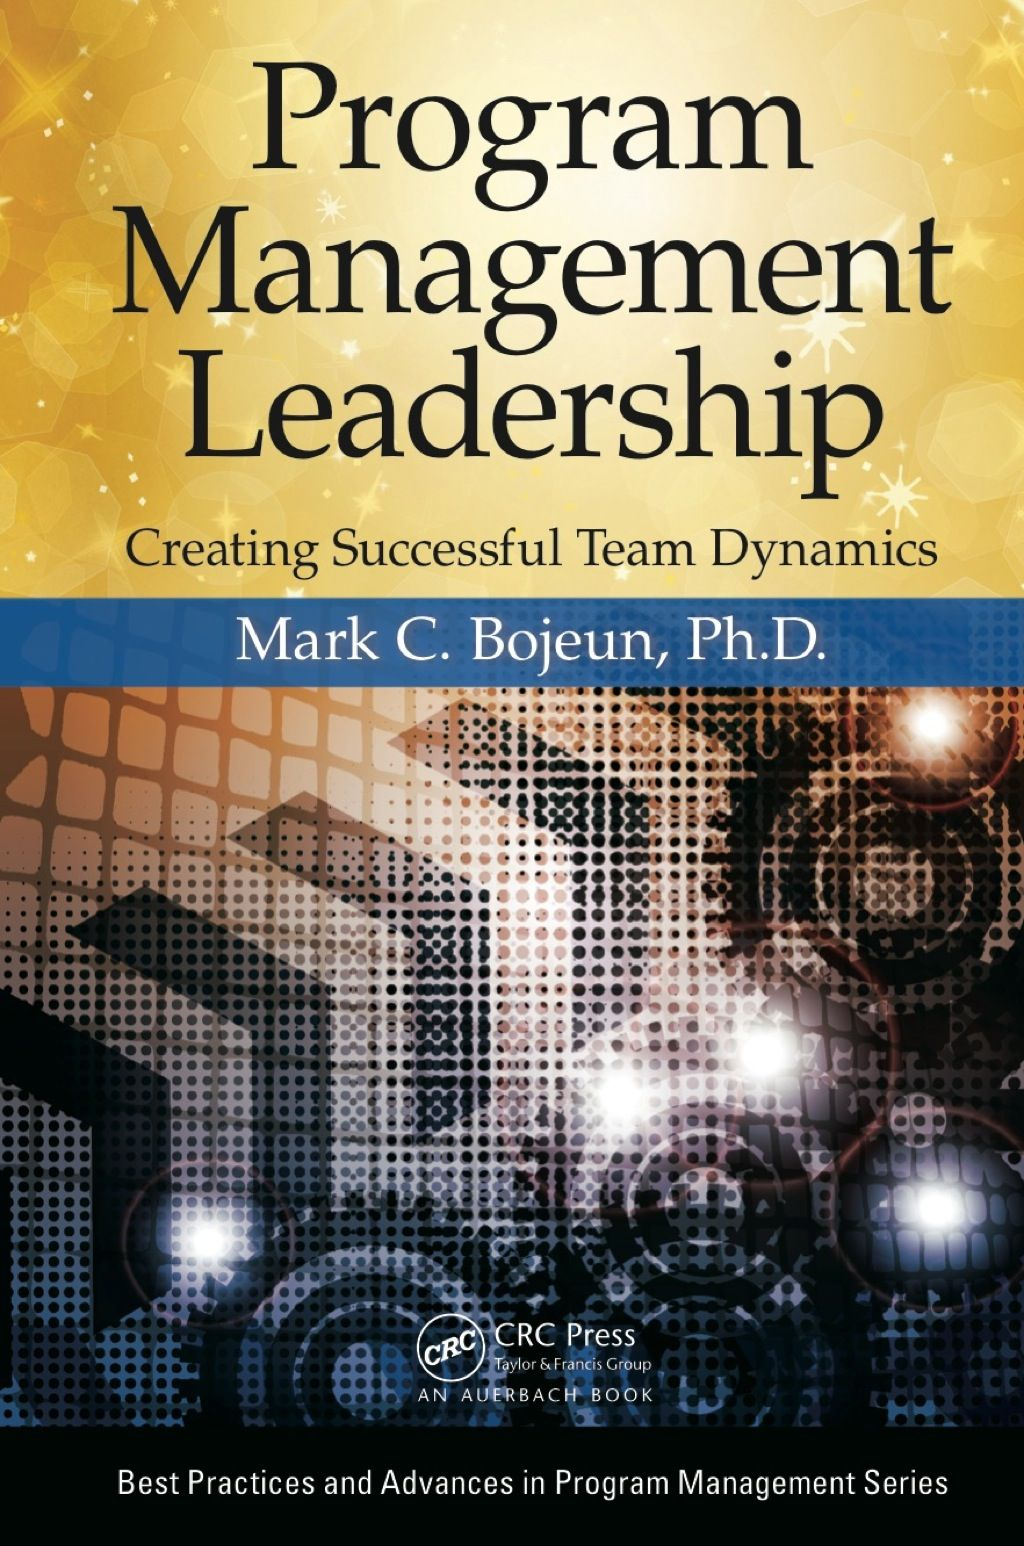 Pin By Julie Thorpe On Leadership And Transformation In 2020 Program Management Project Management Books Leadership